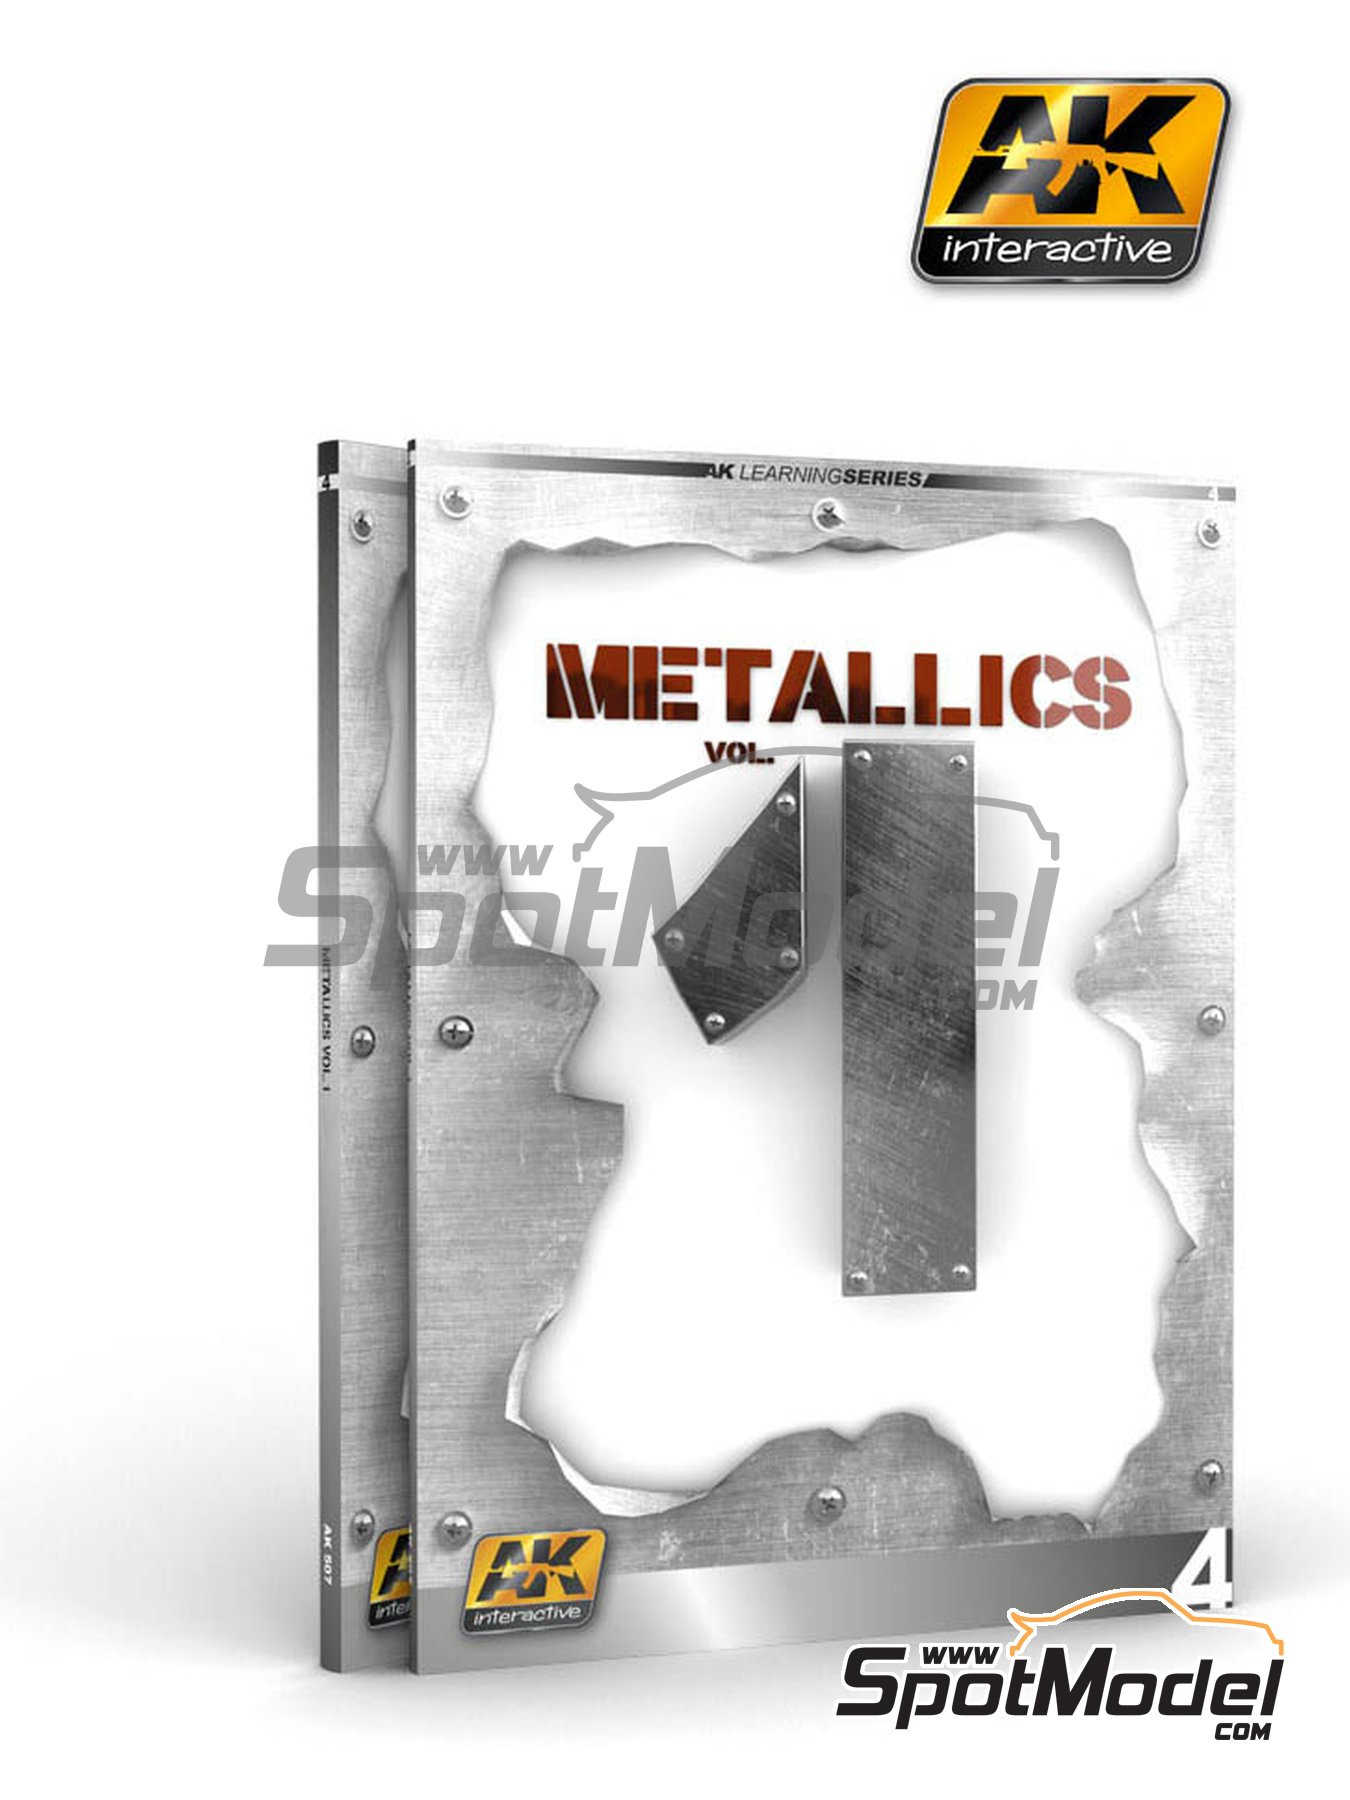 Metallics Volumen 1 - Learning series 04 | Libro fabricado por AK Interactive (ref. AK-507) image